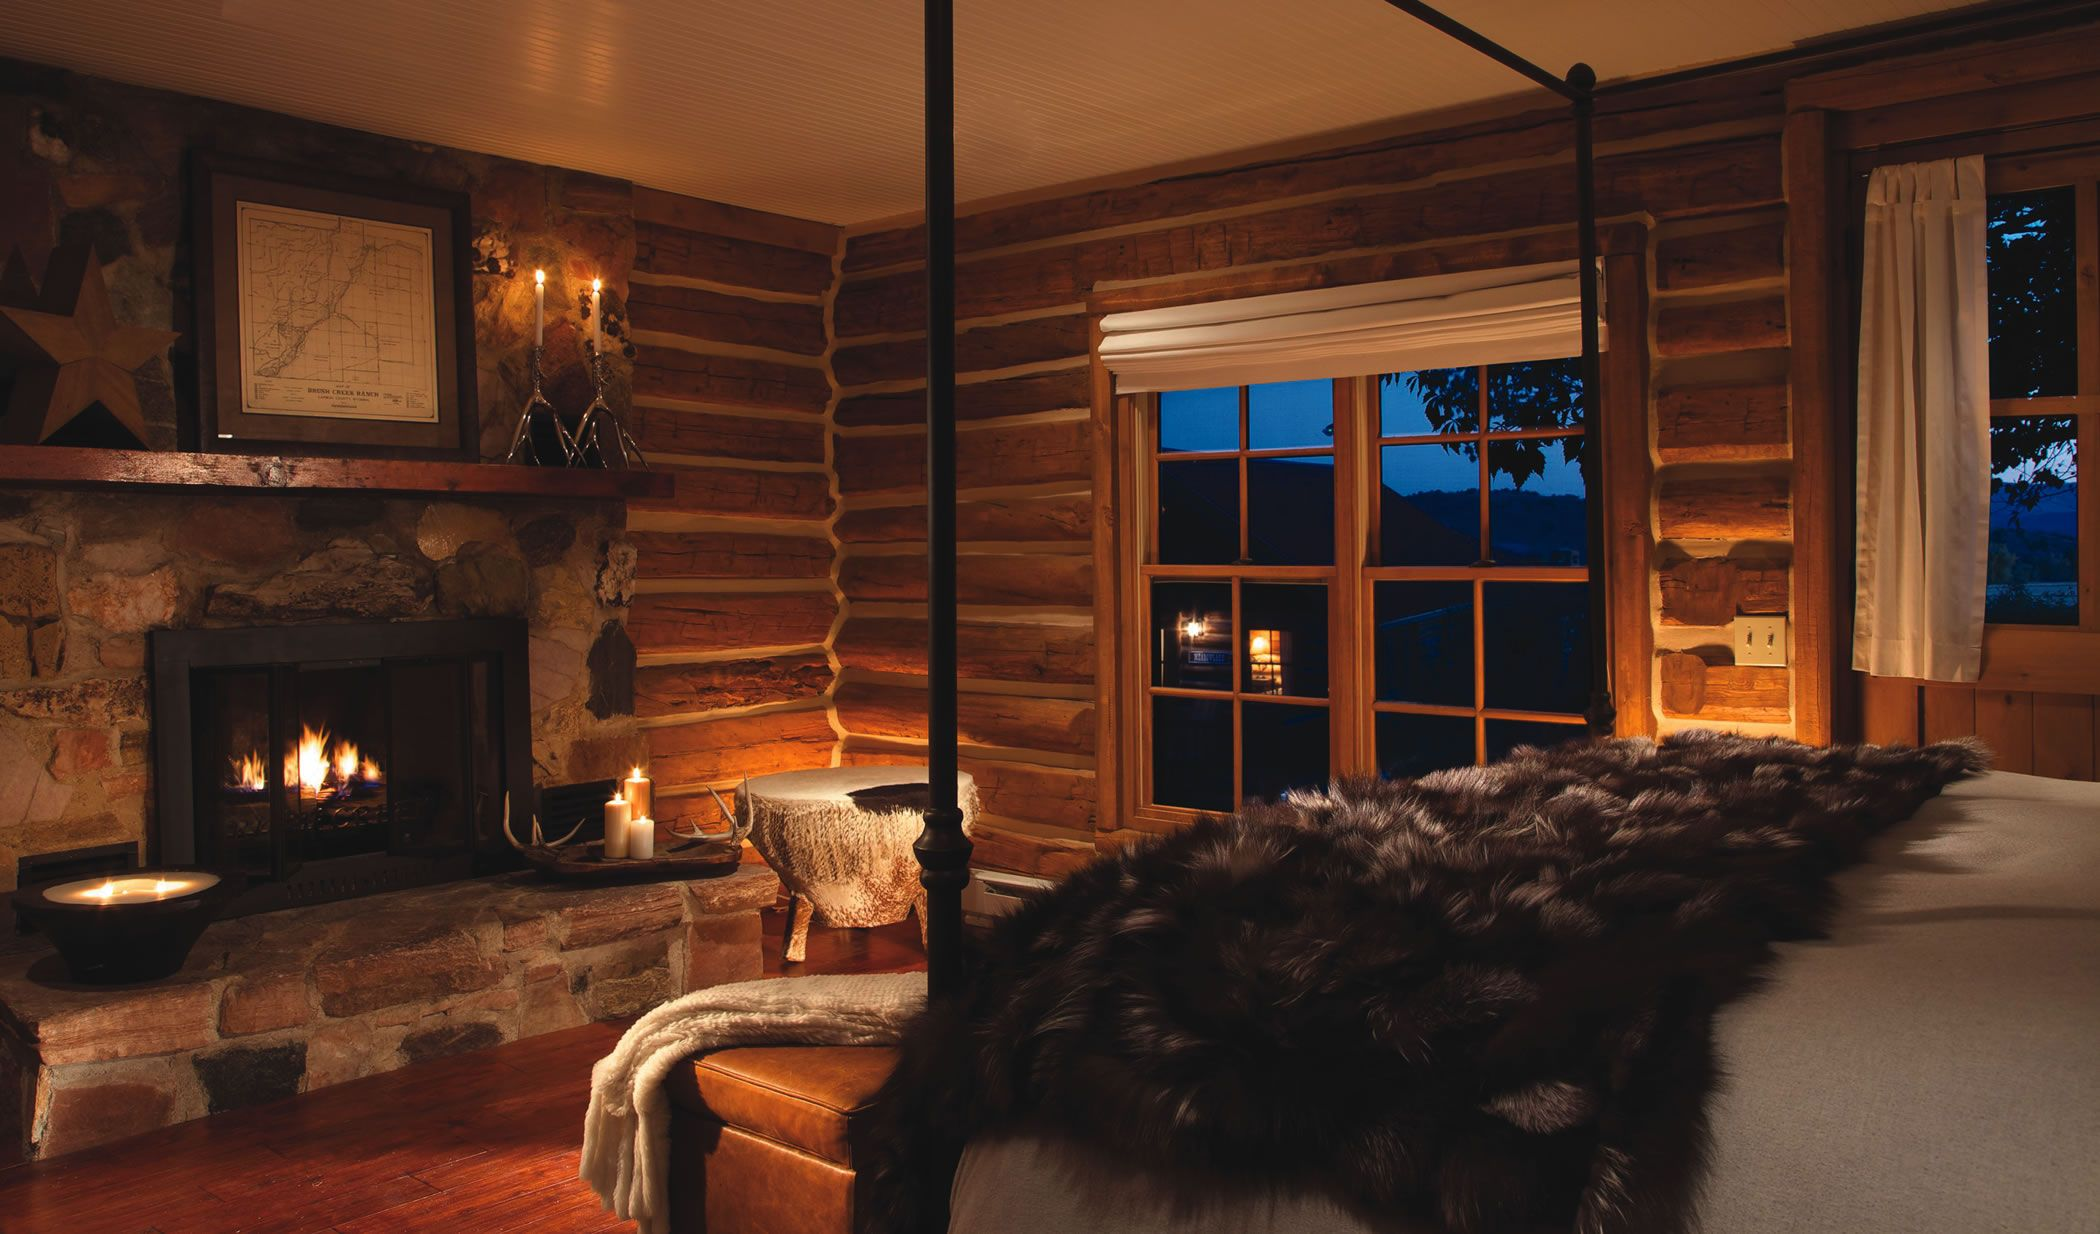 Romantic Cabin Bedroom with Fireplace   Romantic Cabin ...